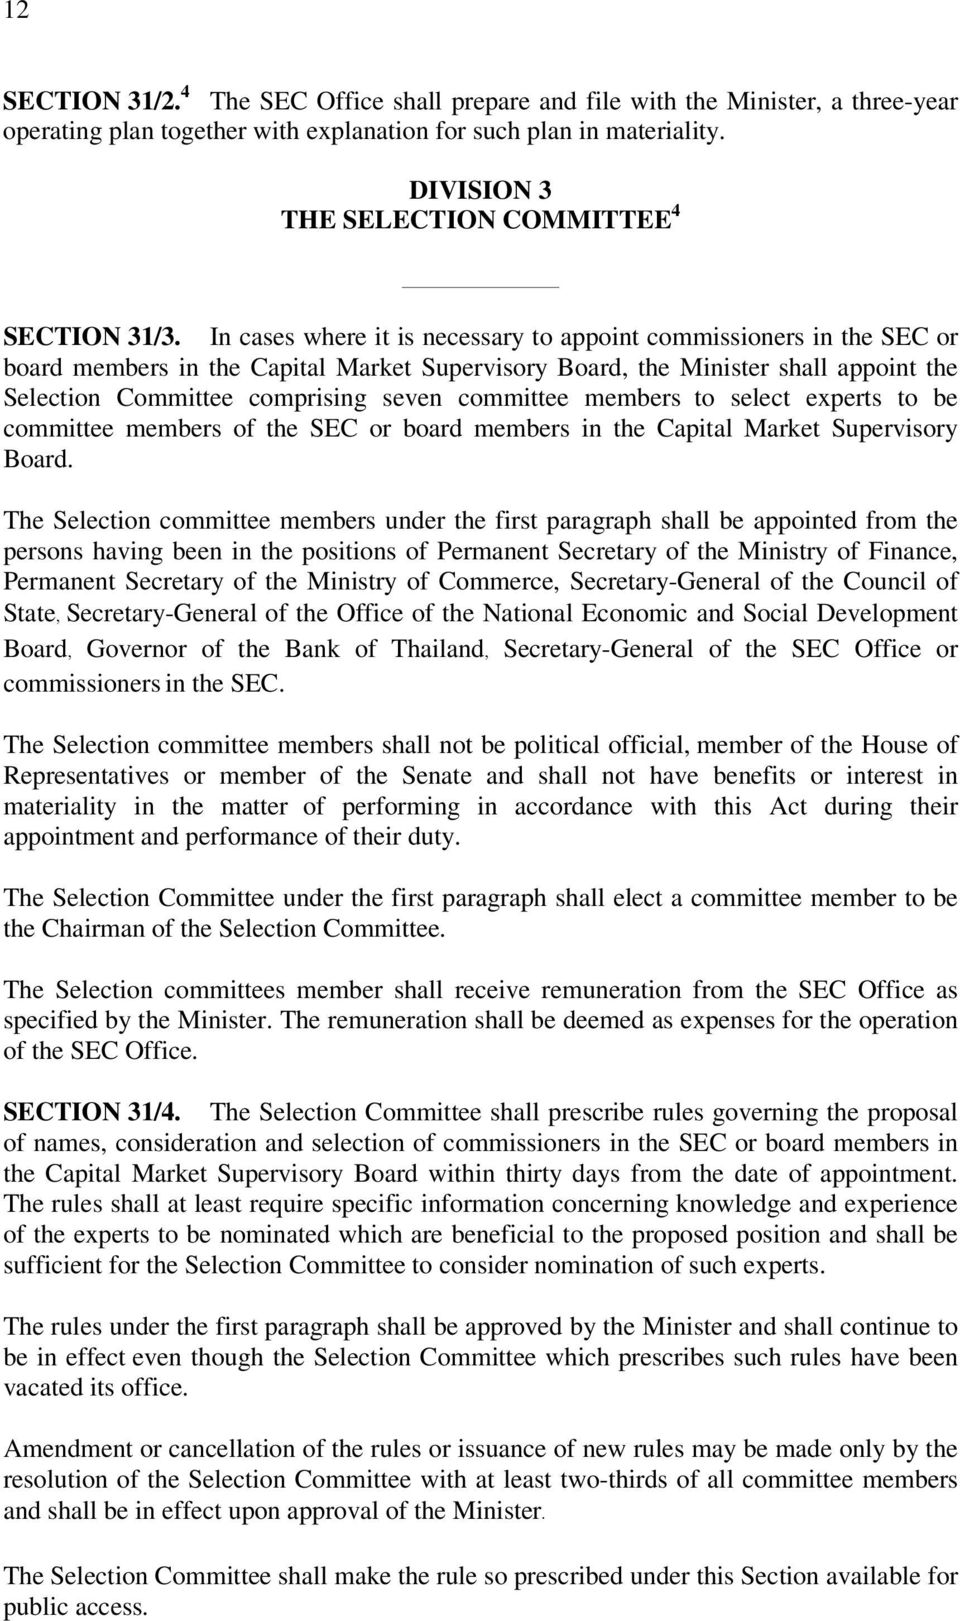 In cases where it is necessary to appoint commissioners in the SEC or board members in the Capital Market Supervisory Board, the Minister shall appoint the Selection Committee comprising seven